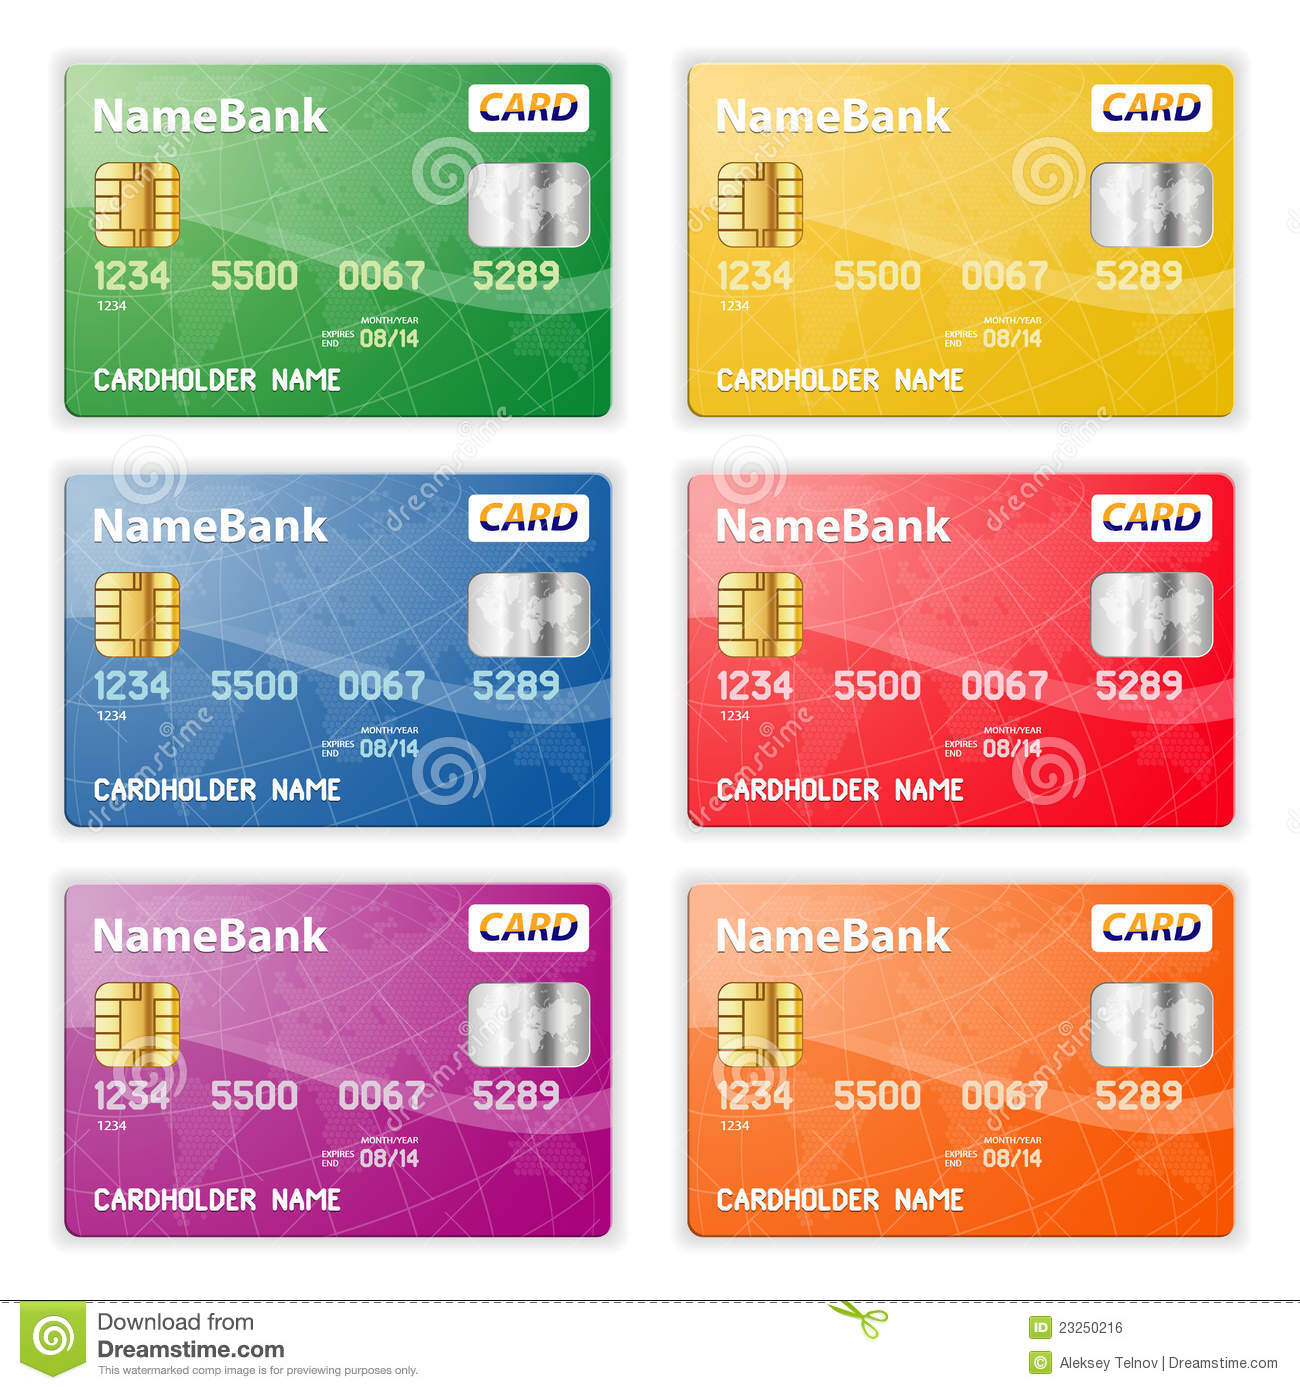 Role Play Credit Cards Debit Cards Poster: Set Of Credit Cards Stock Vector. Illustration Of Card